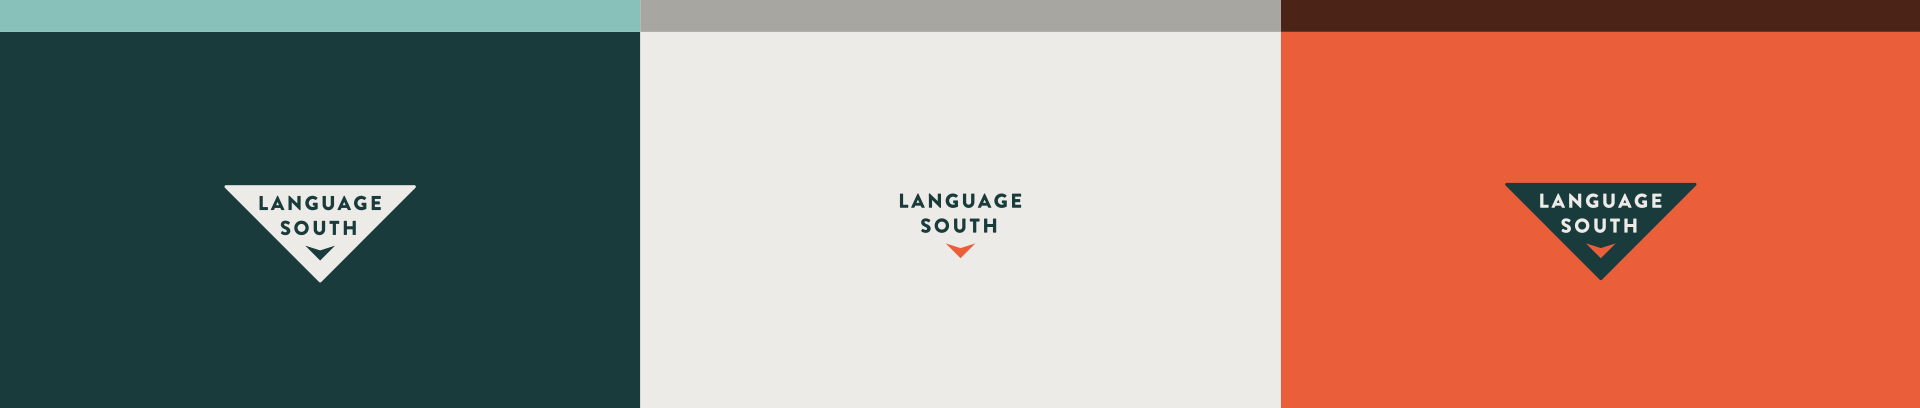 Language South - Brand Identity, Logos, Color Palettes